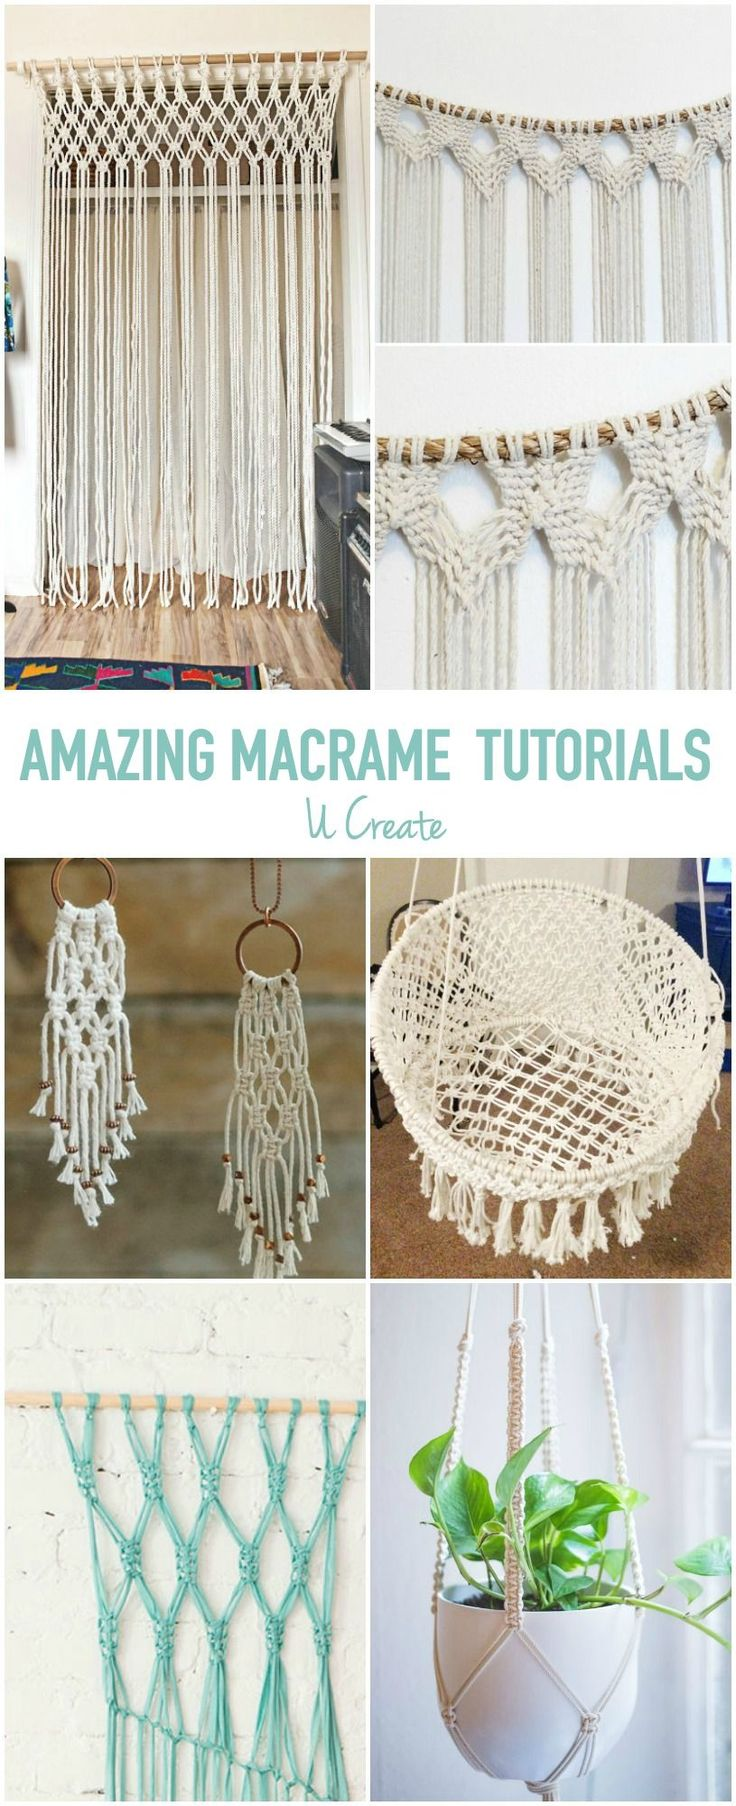 Amazing Macrame Tutorials (U Create)